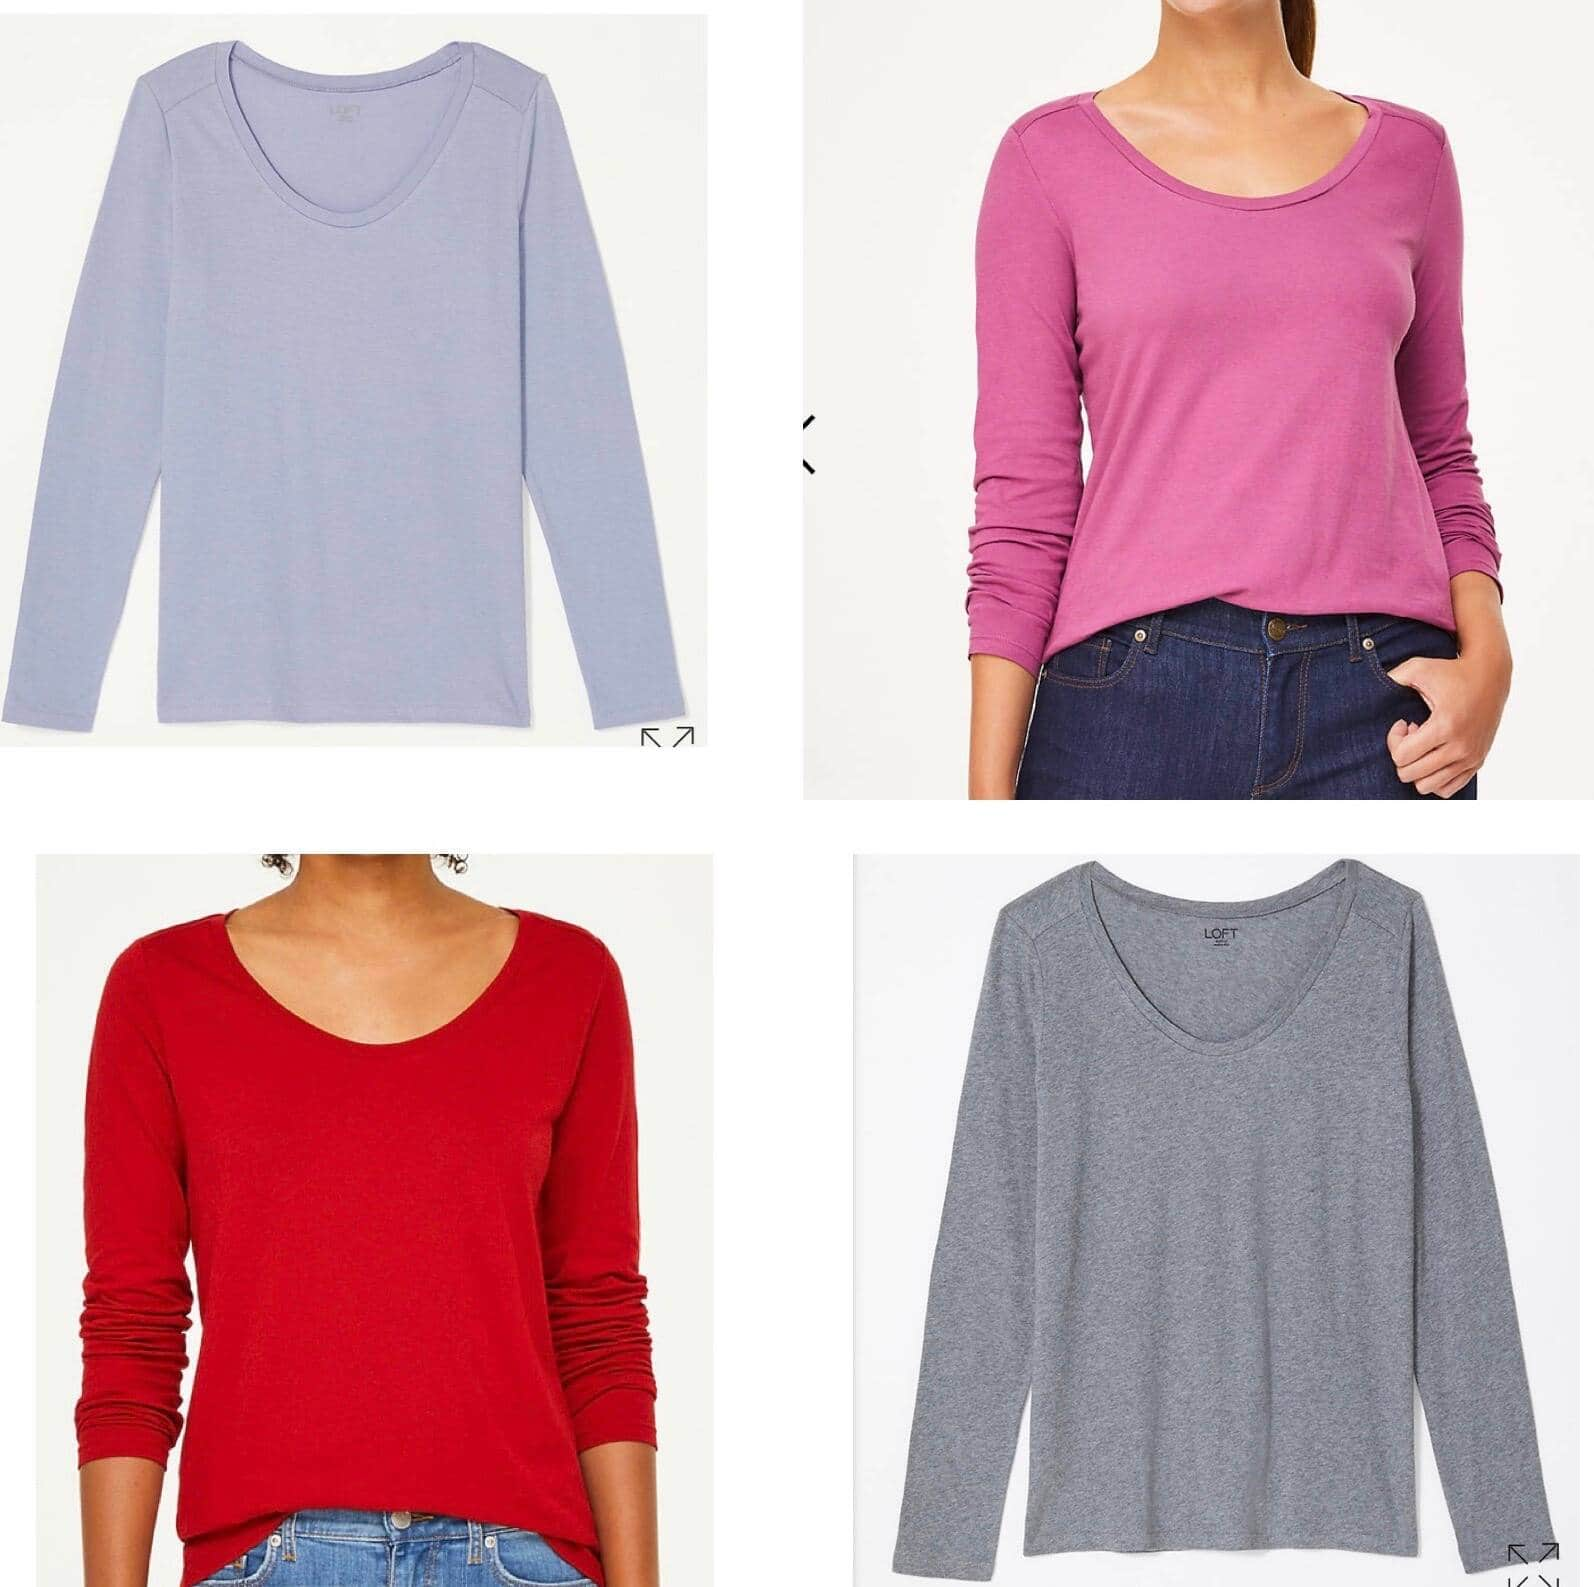 Loft Outlet Apparel: Extra 20% Off Clearance: Dresses from $13, Tops